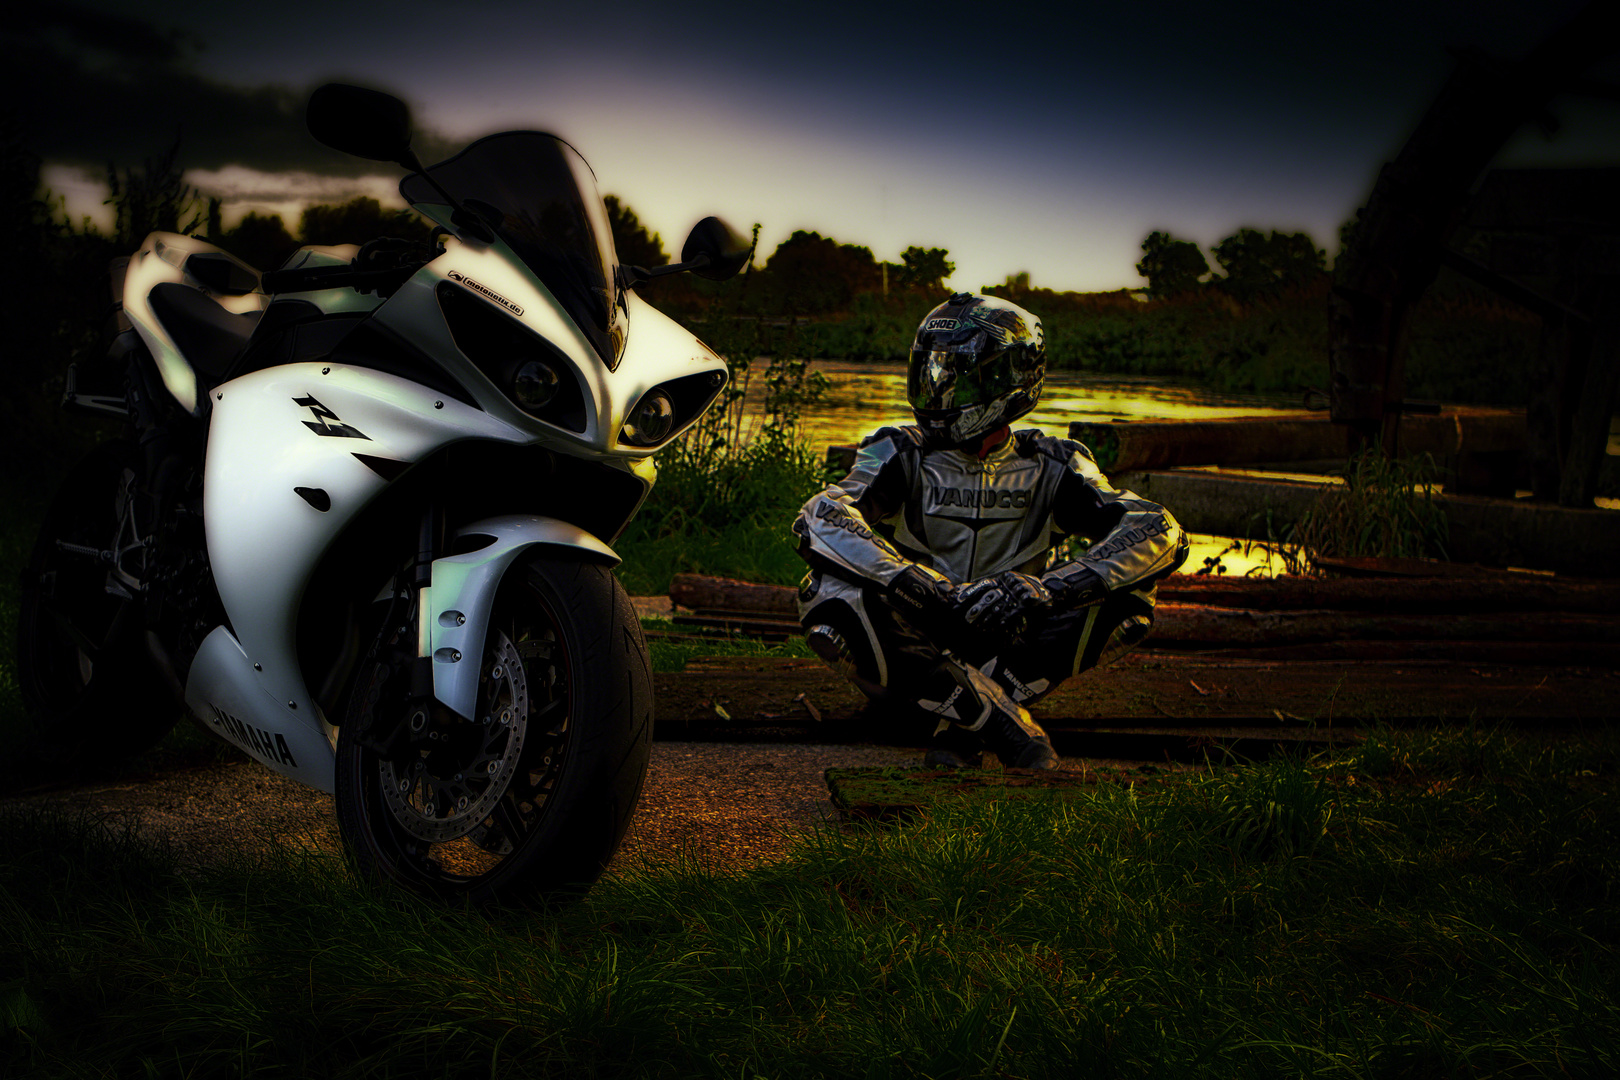 me and my r1 :)